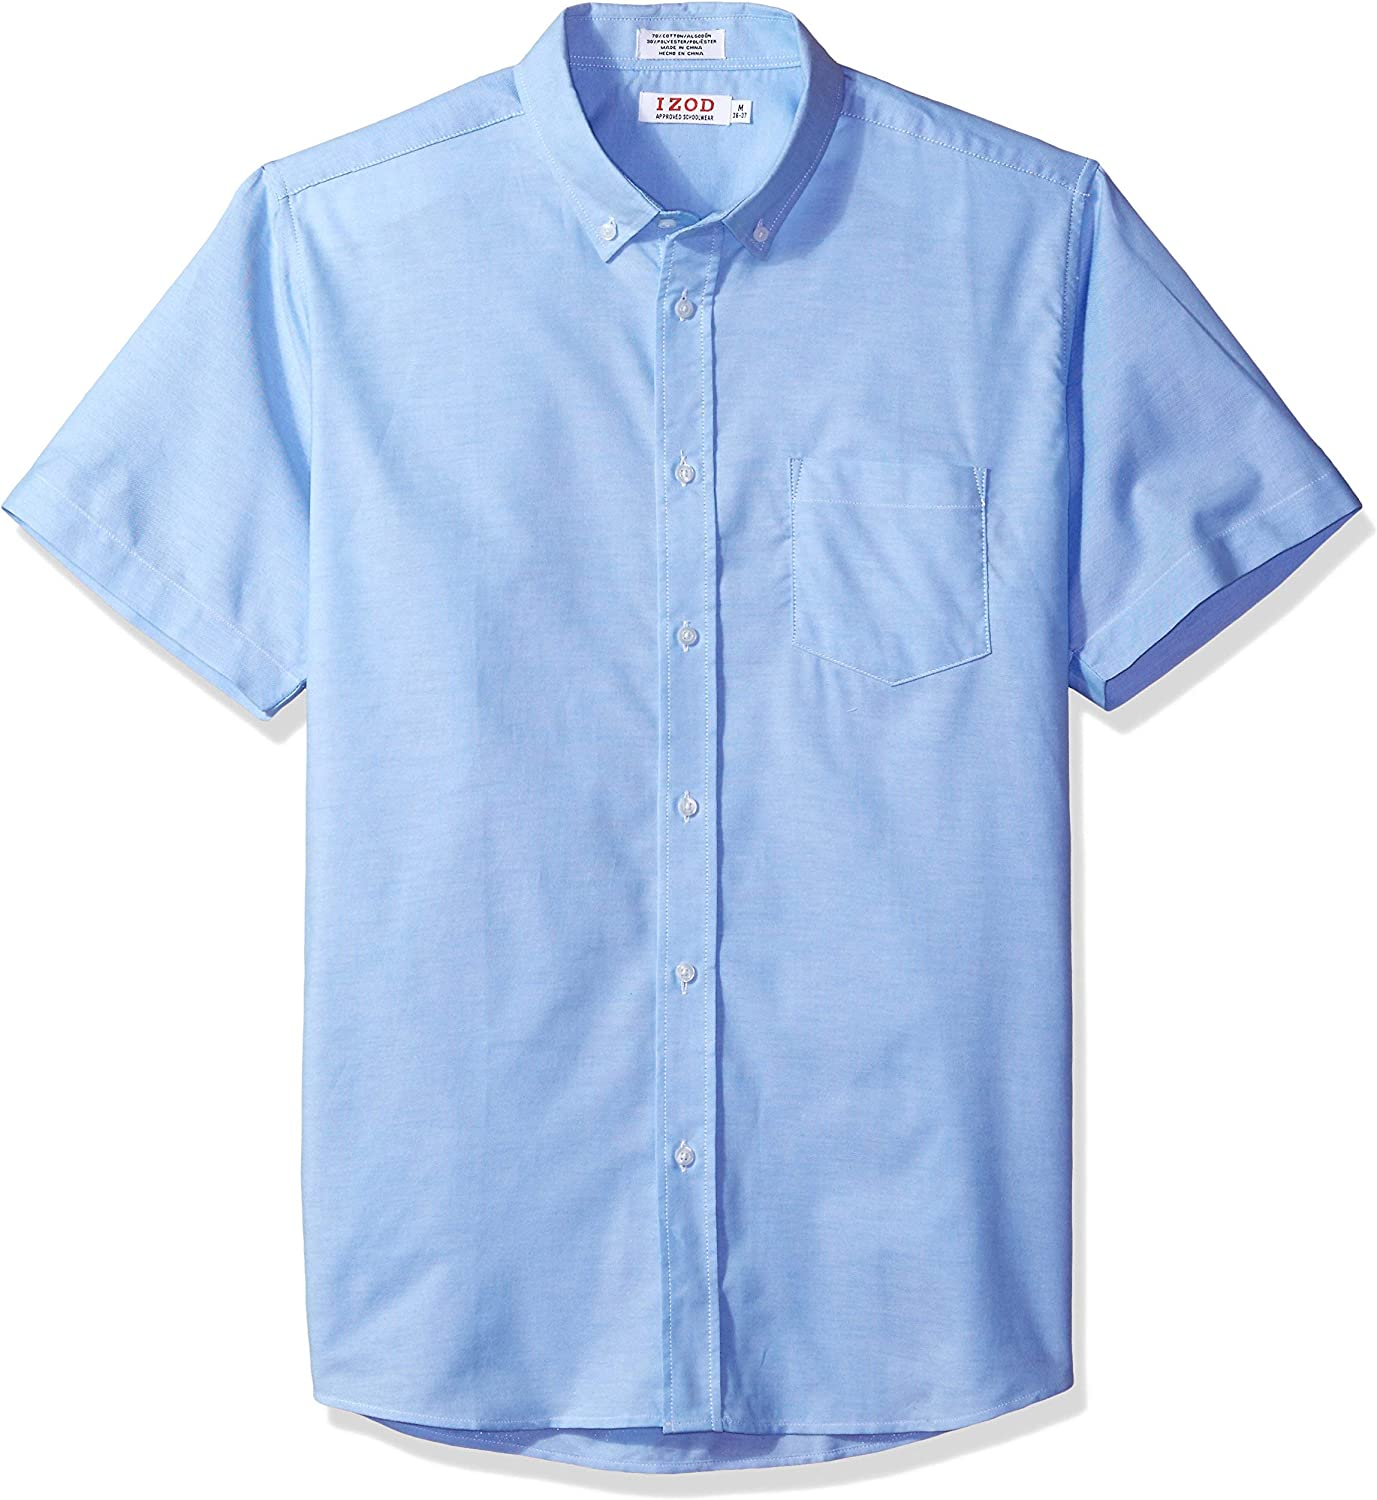 George Boys School Uniforms Short Sleeve Button Up Oxford Shirt